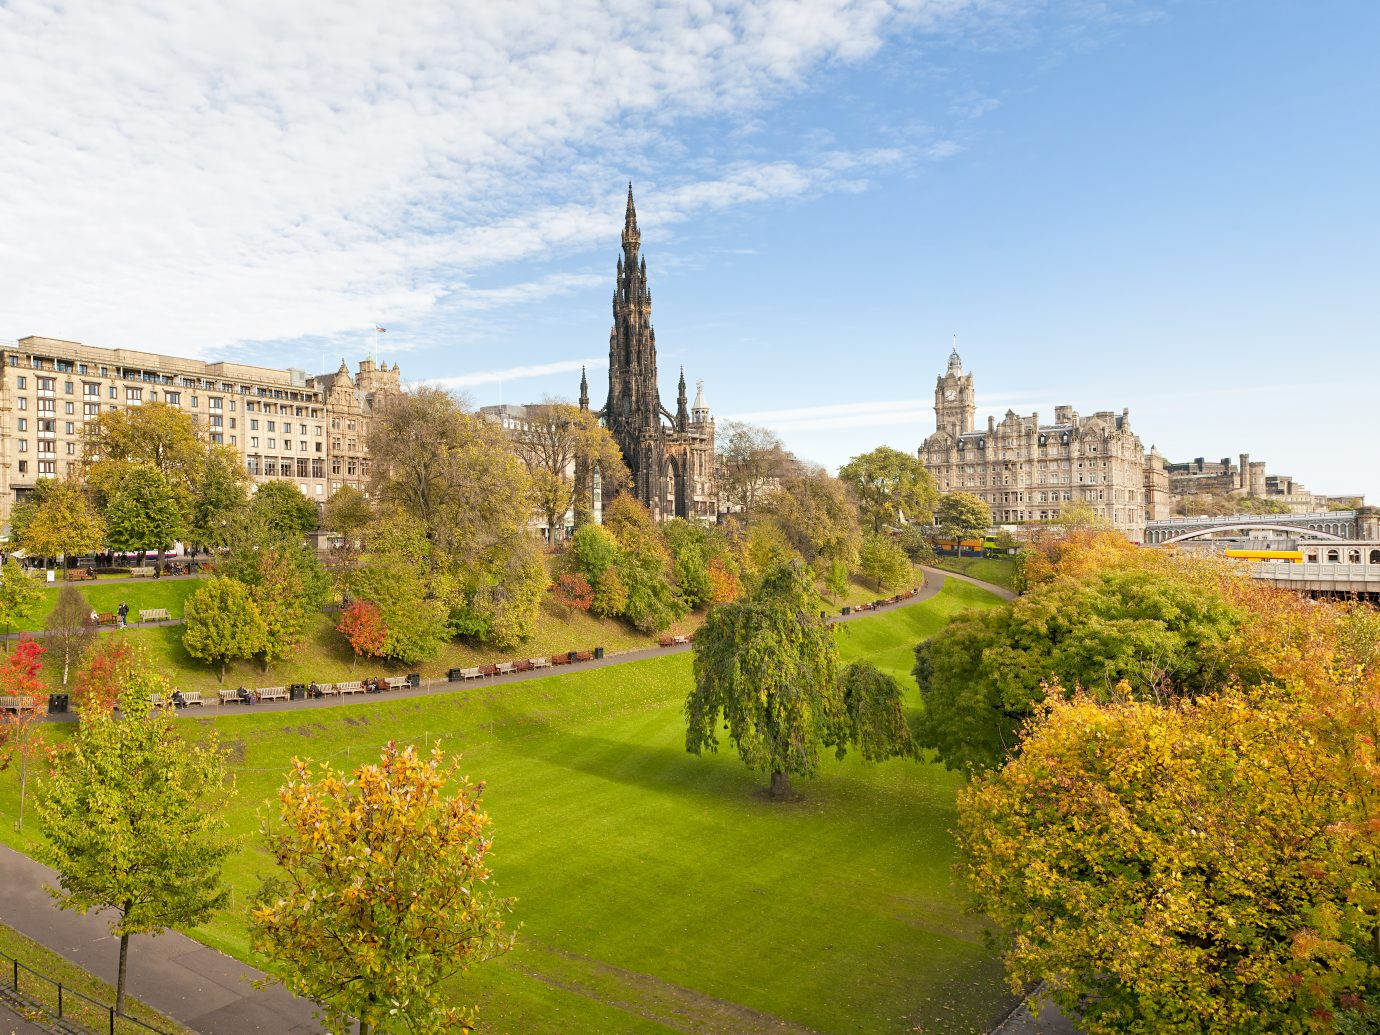 Looking across Princes Street Gardens to the Scott Monument and Balmoral Hotel in the centre of Scotland's capital city, Edinburgh.